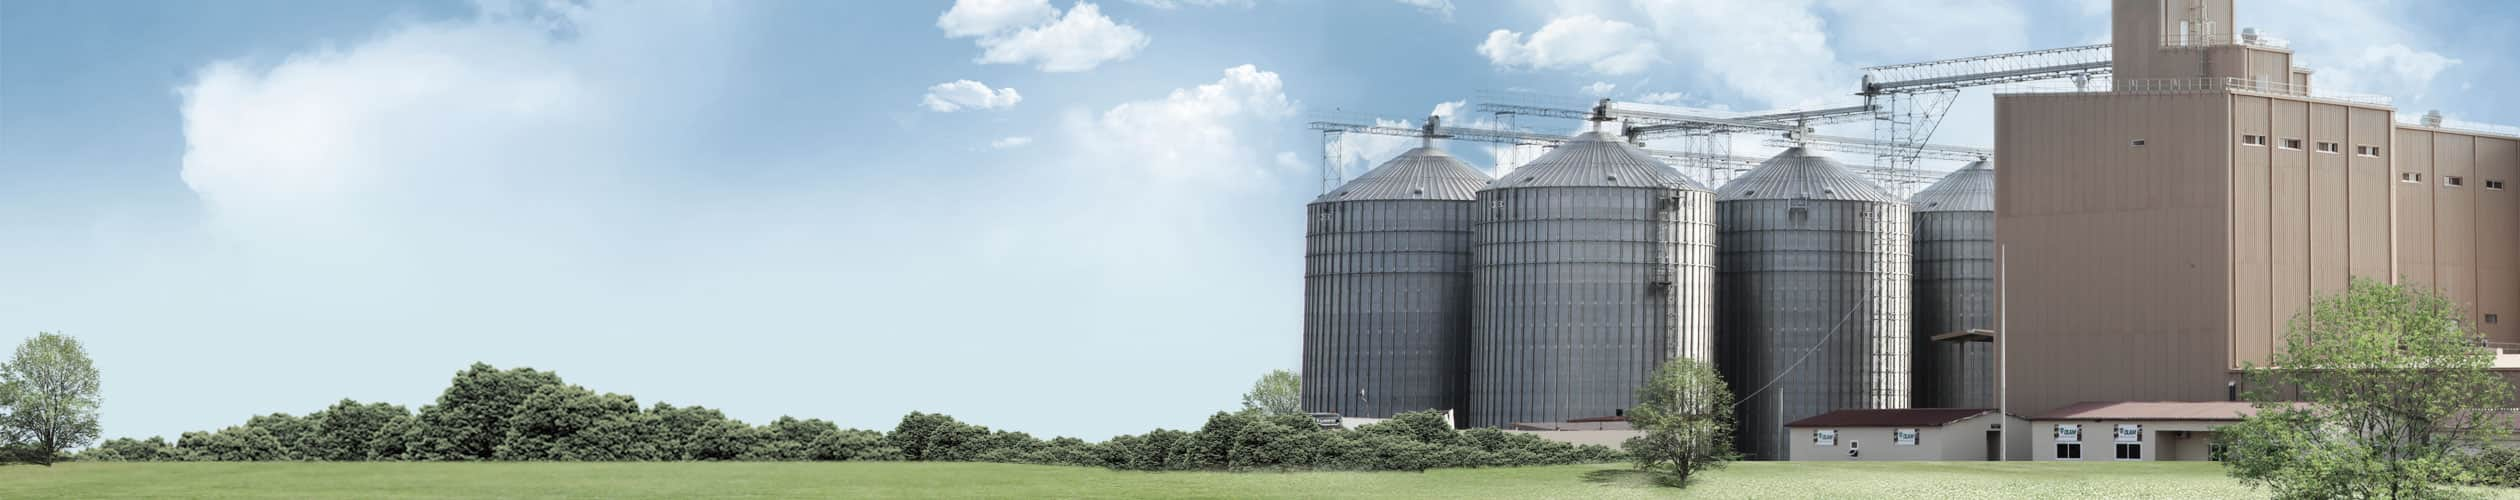 Grain Storage & Handling Systems